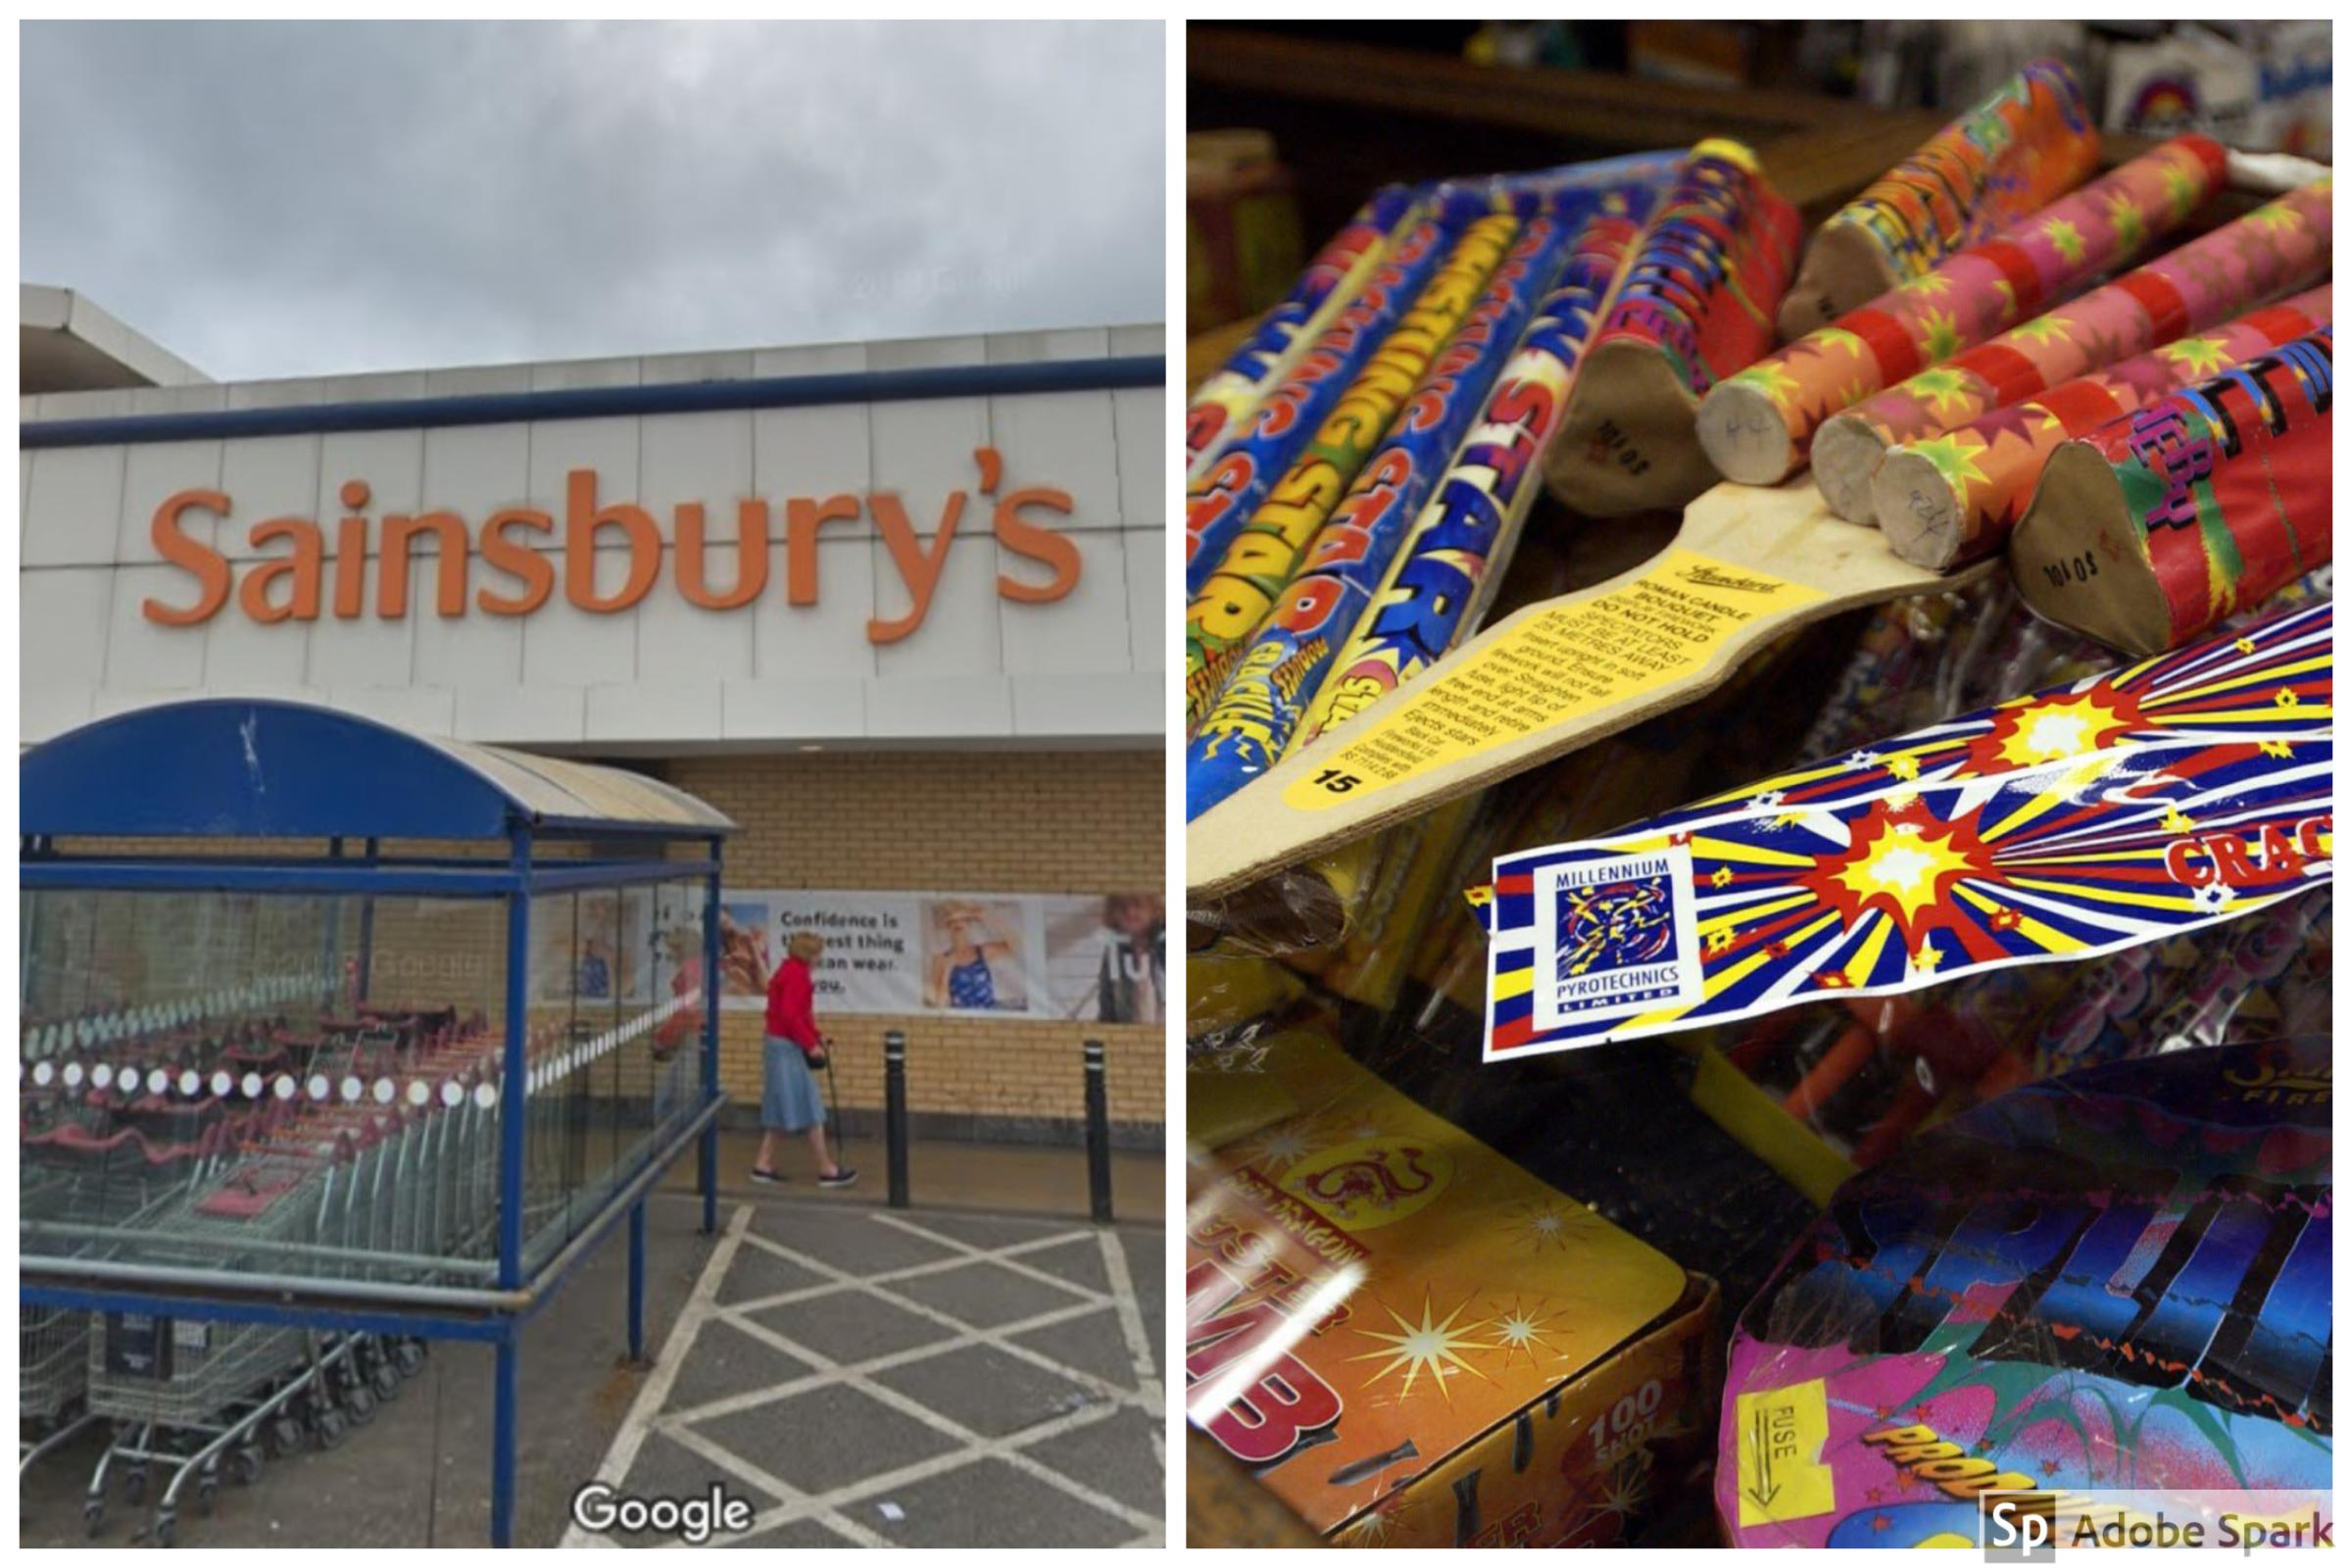 Sainsbury's firework ban applauded by Bradford campaigners - but should other supermarkets do the same?